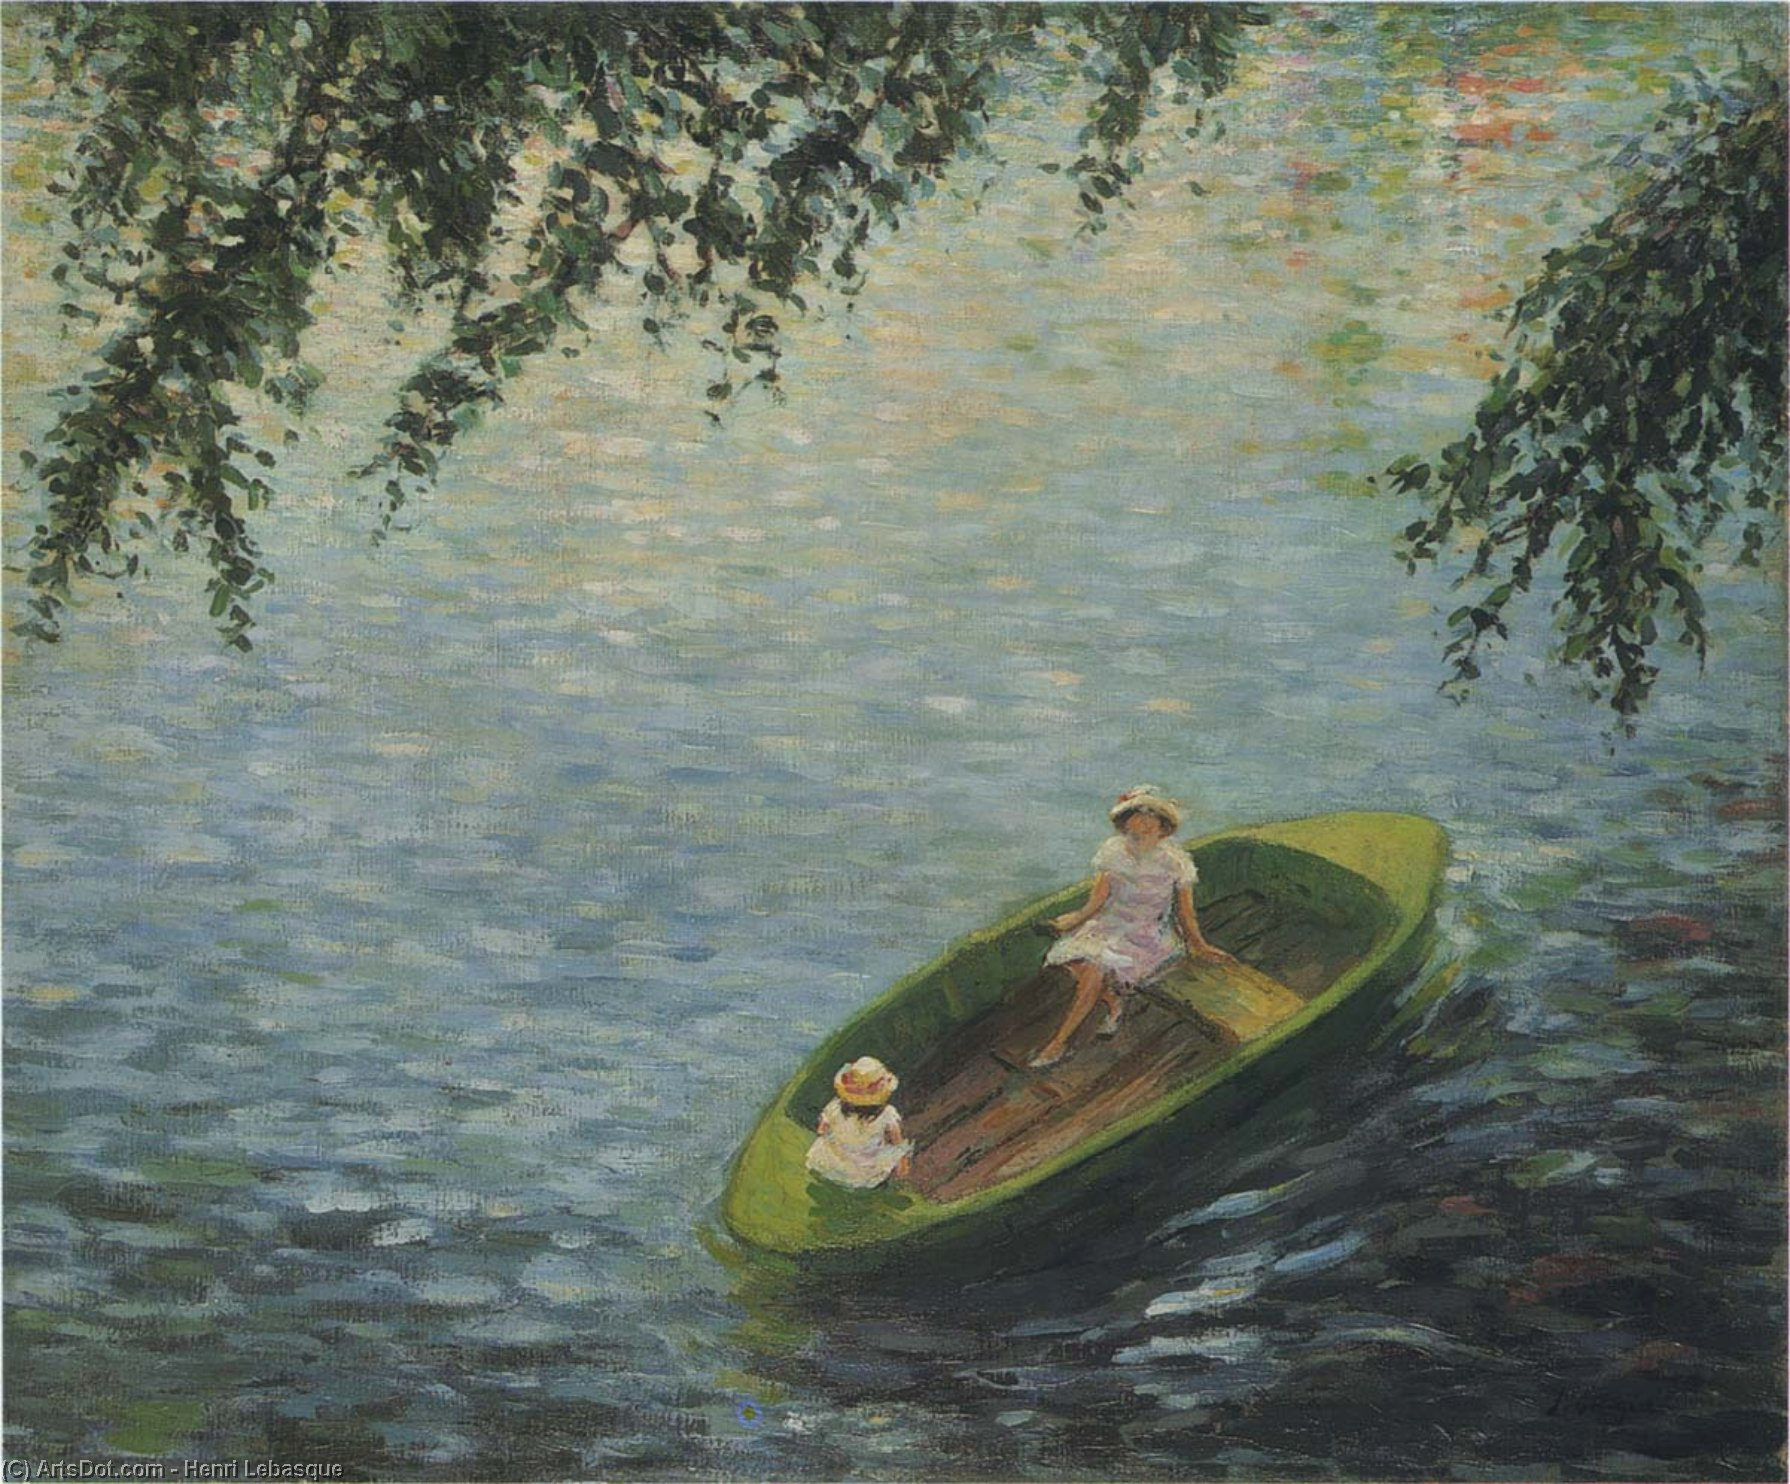 Wikioo.org - The Encyclopedia of Fine Arts - Painting, Artwork by Henri Lebasque - Young girls in a boat on the Marne